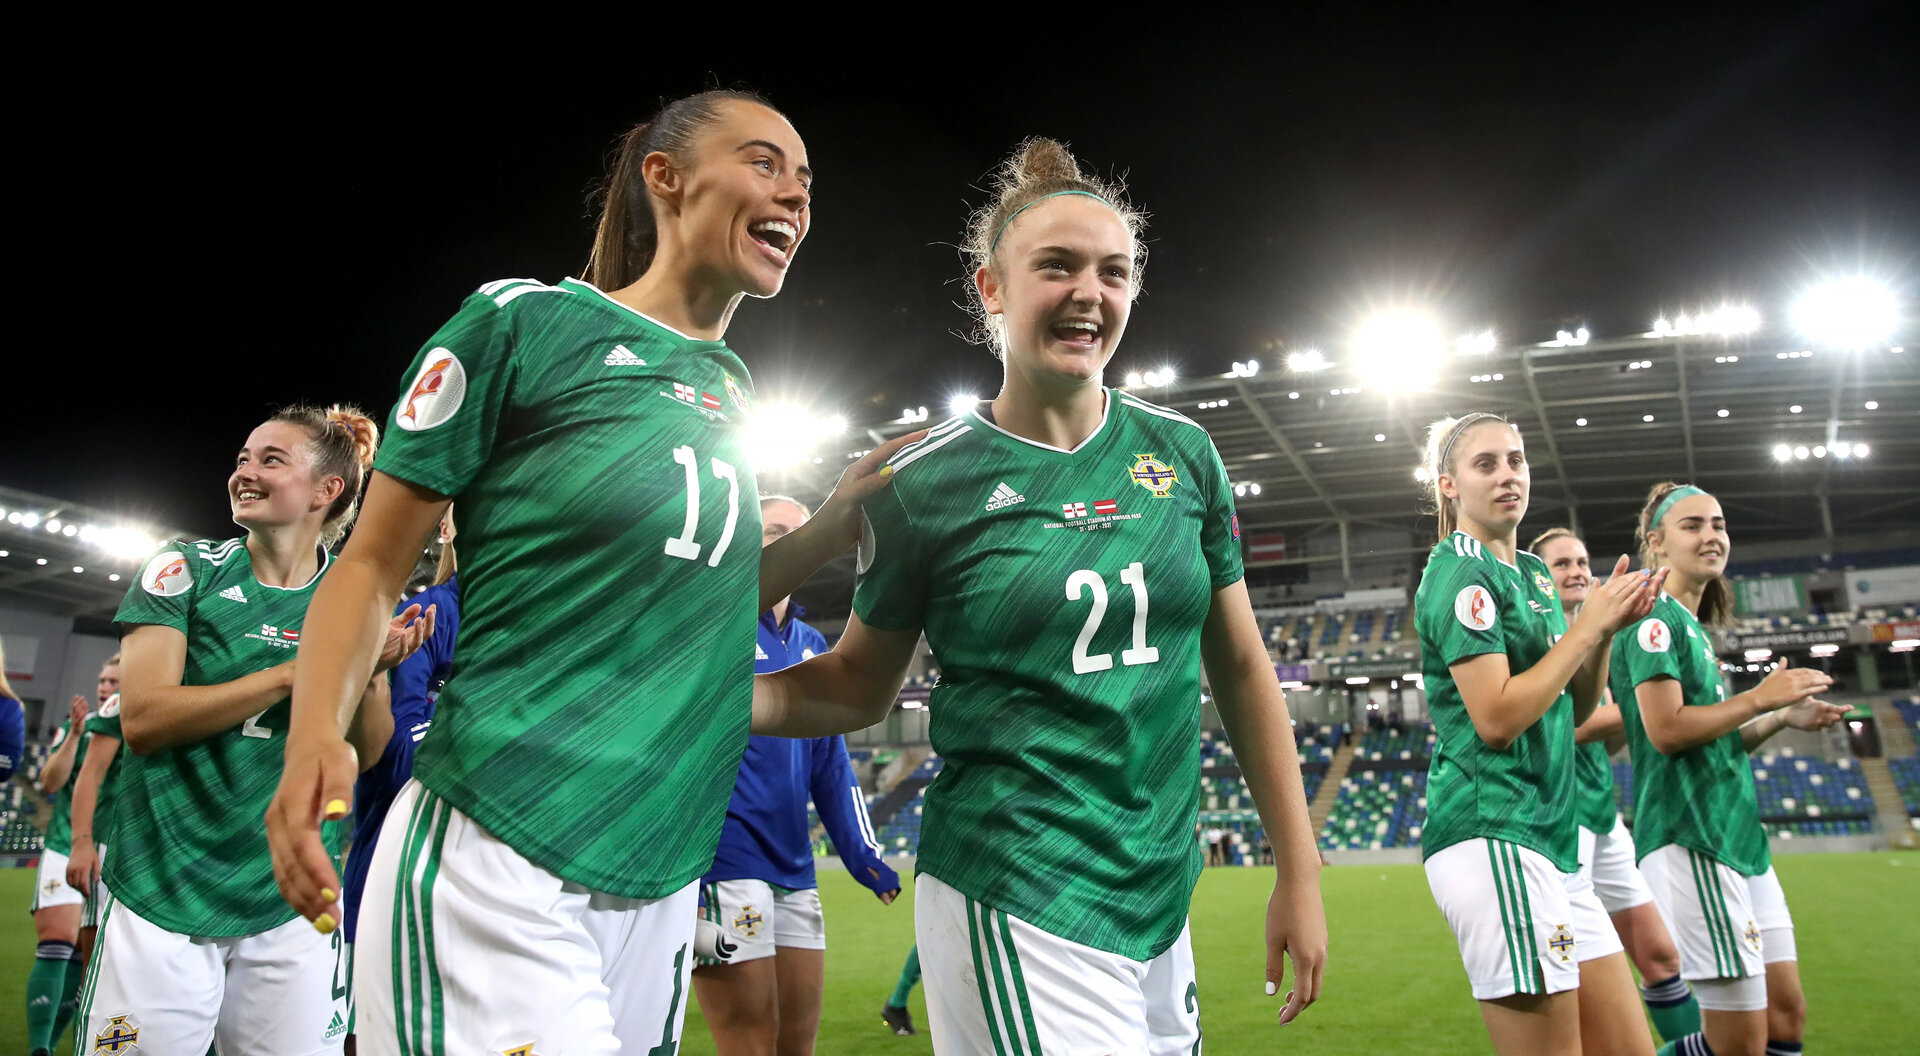 Press Eye - Belfast, Northern Ireland - 21st September 2021 - Photo by William Cherry/Presseye  Northern Ireland's Laura Rafferty and Kerry Beattie after the final whistle of the 4-0 win in Tuesday nights Women's World Cup Qualifier against Latvia at the National Stadium, Belfast    Photo by William Cherry / Presseye